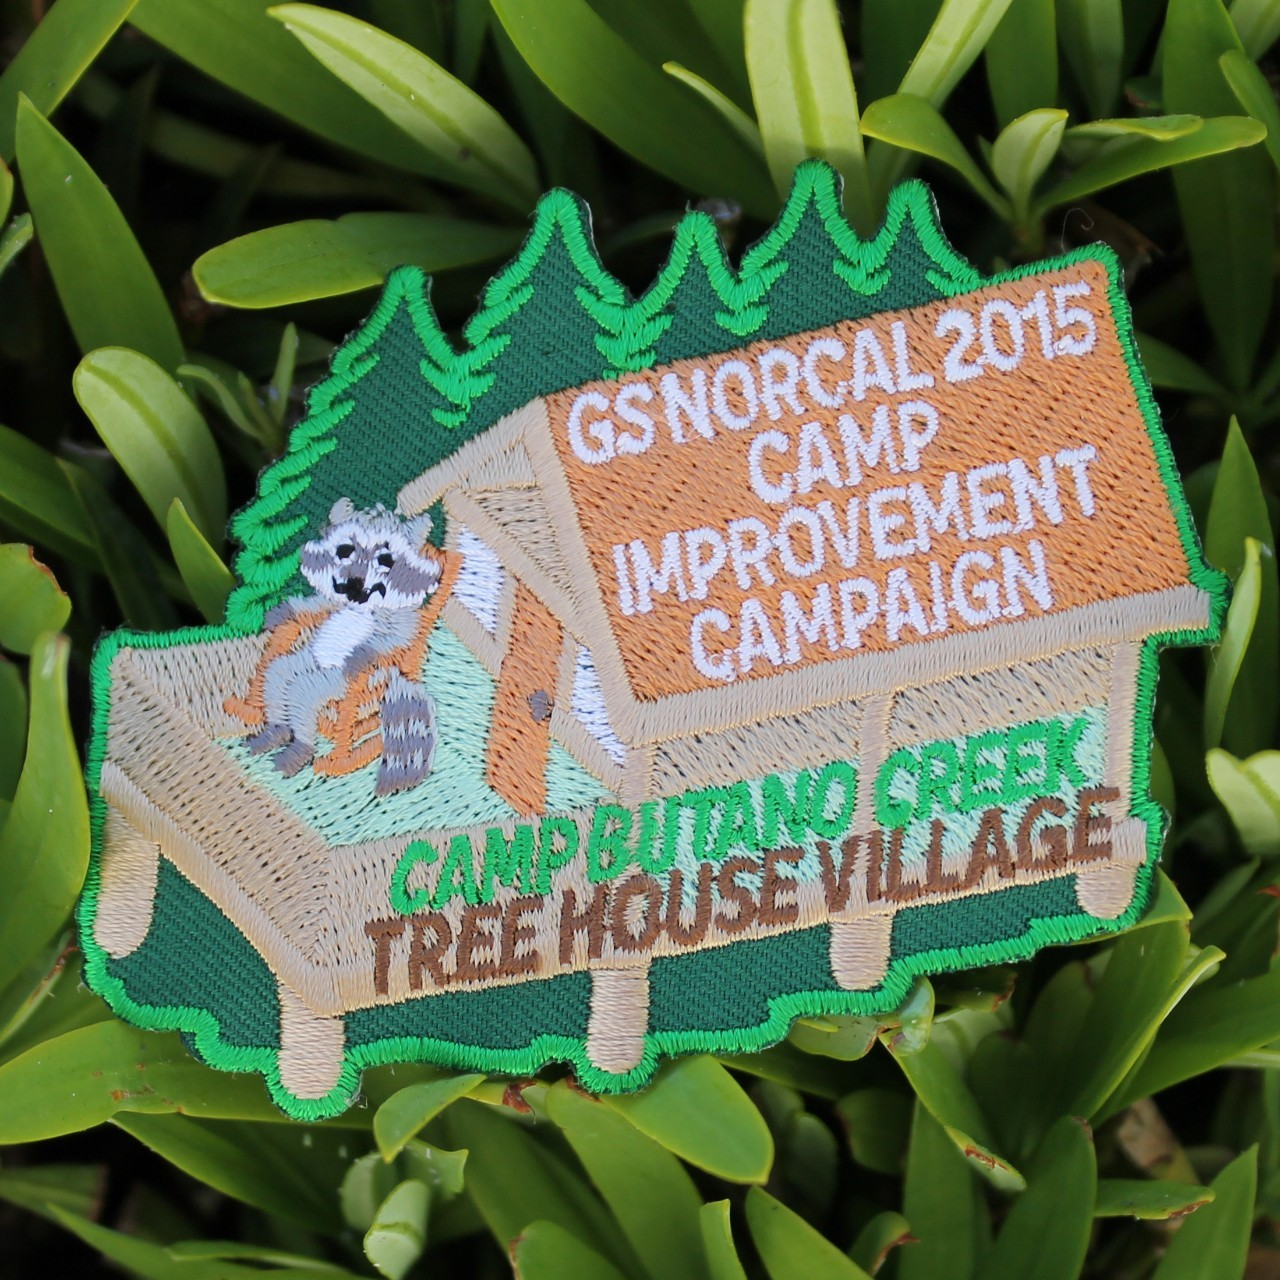 camp-investment-patch-2015